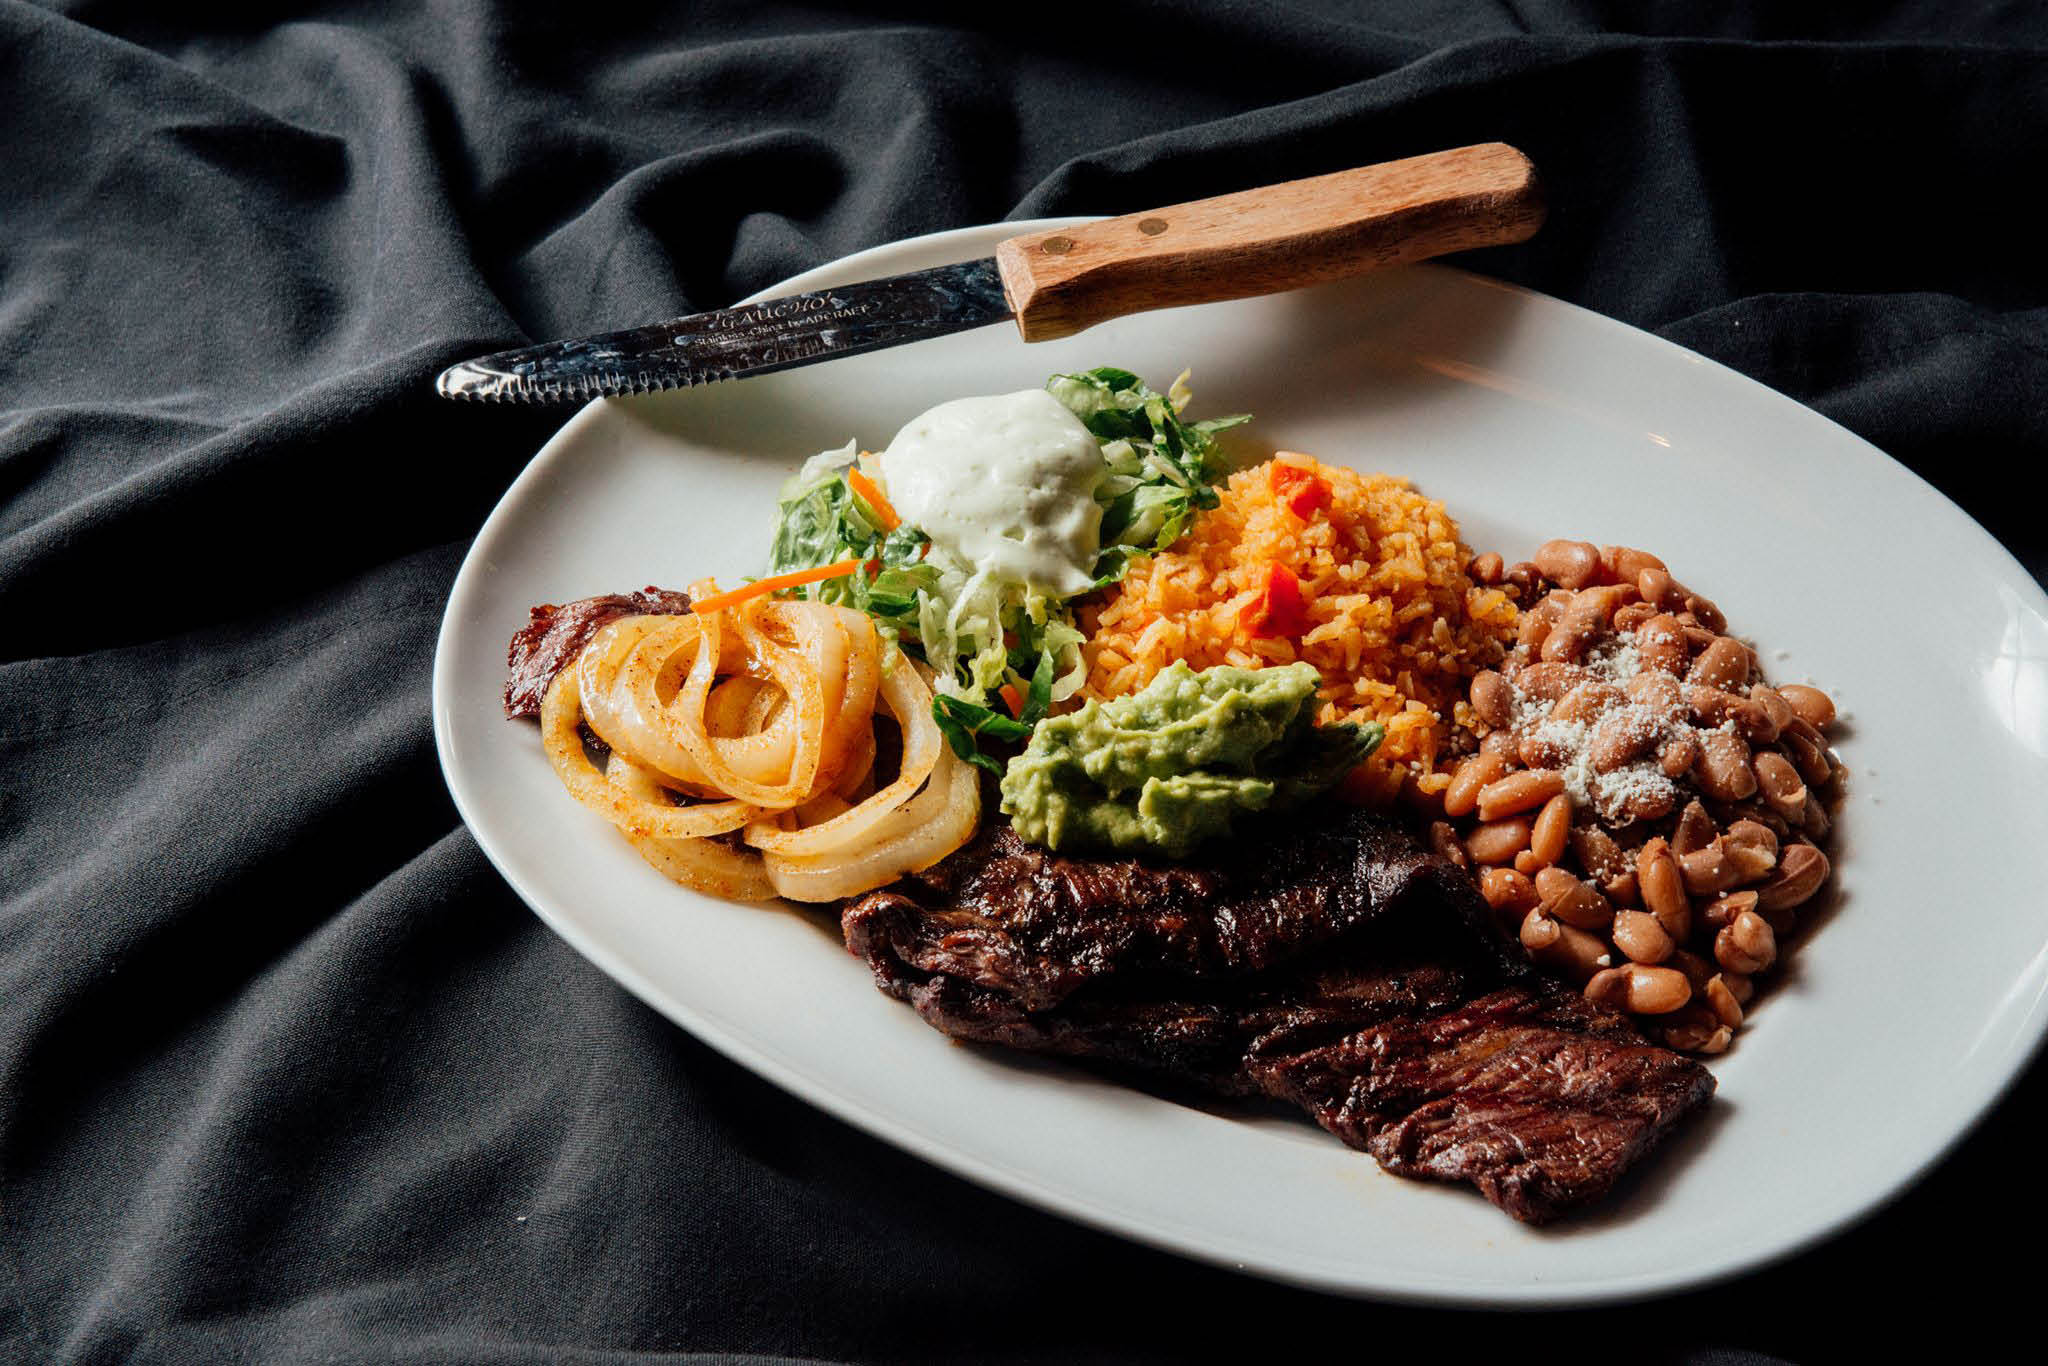 Delicious Mexican food from Bandidos Restaurant & Cantina in Shoreline, WA - Mexican food coupons near me - Seattle Mexican restaurants - Mexican restaurant coupons near me